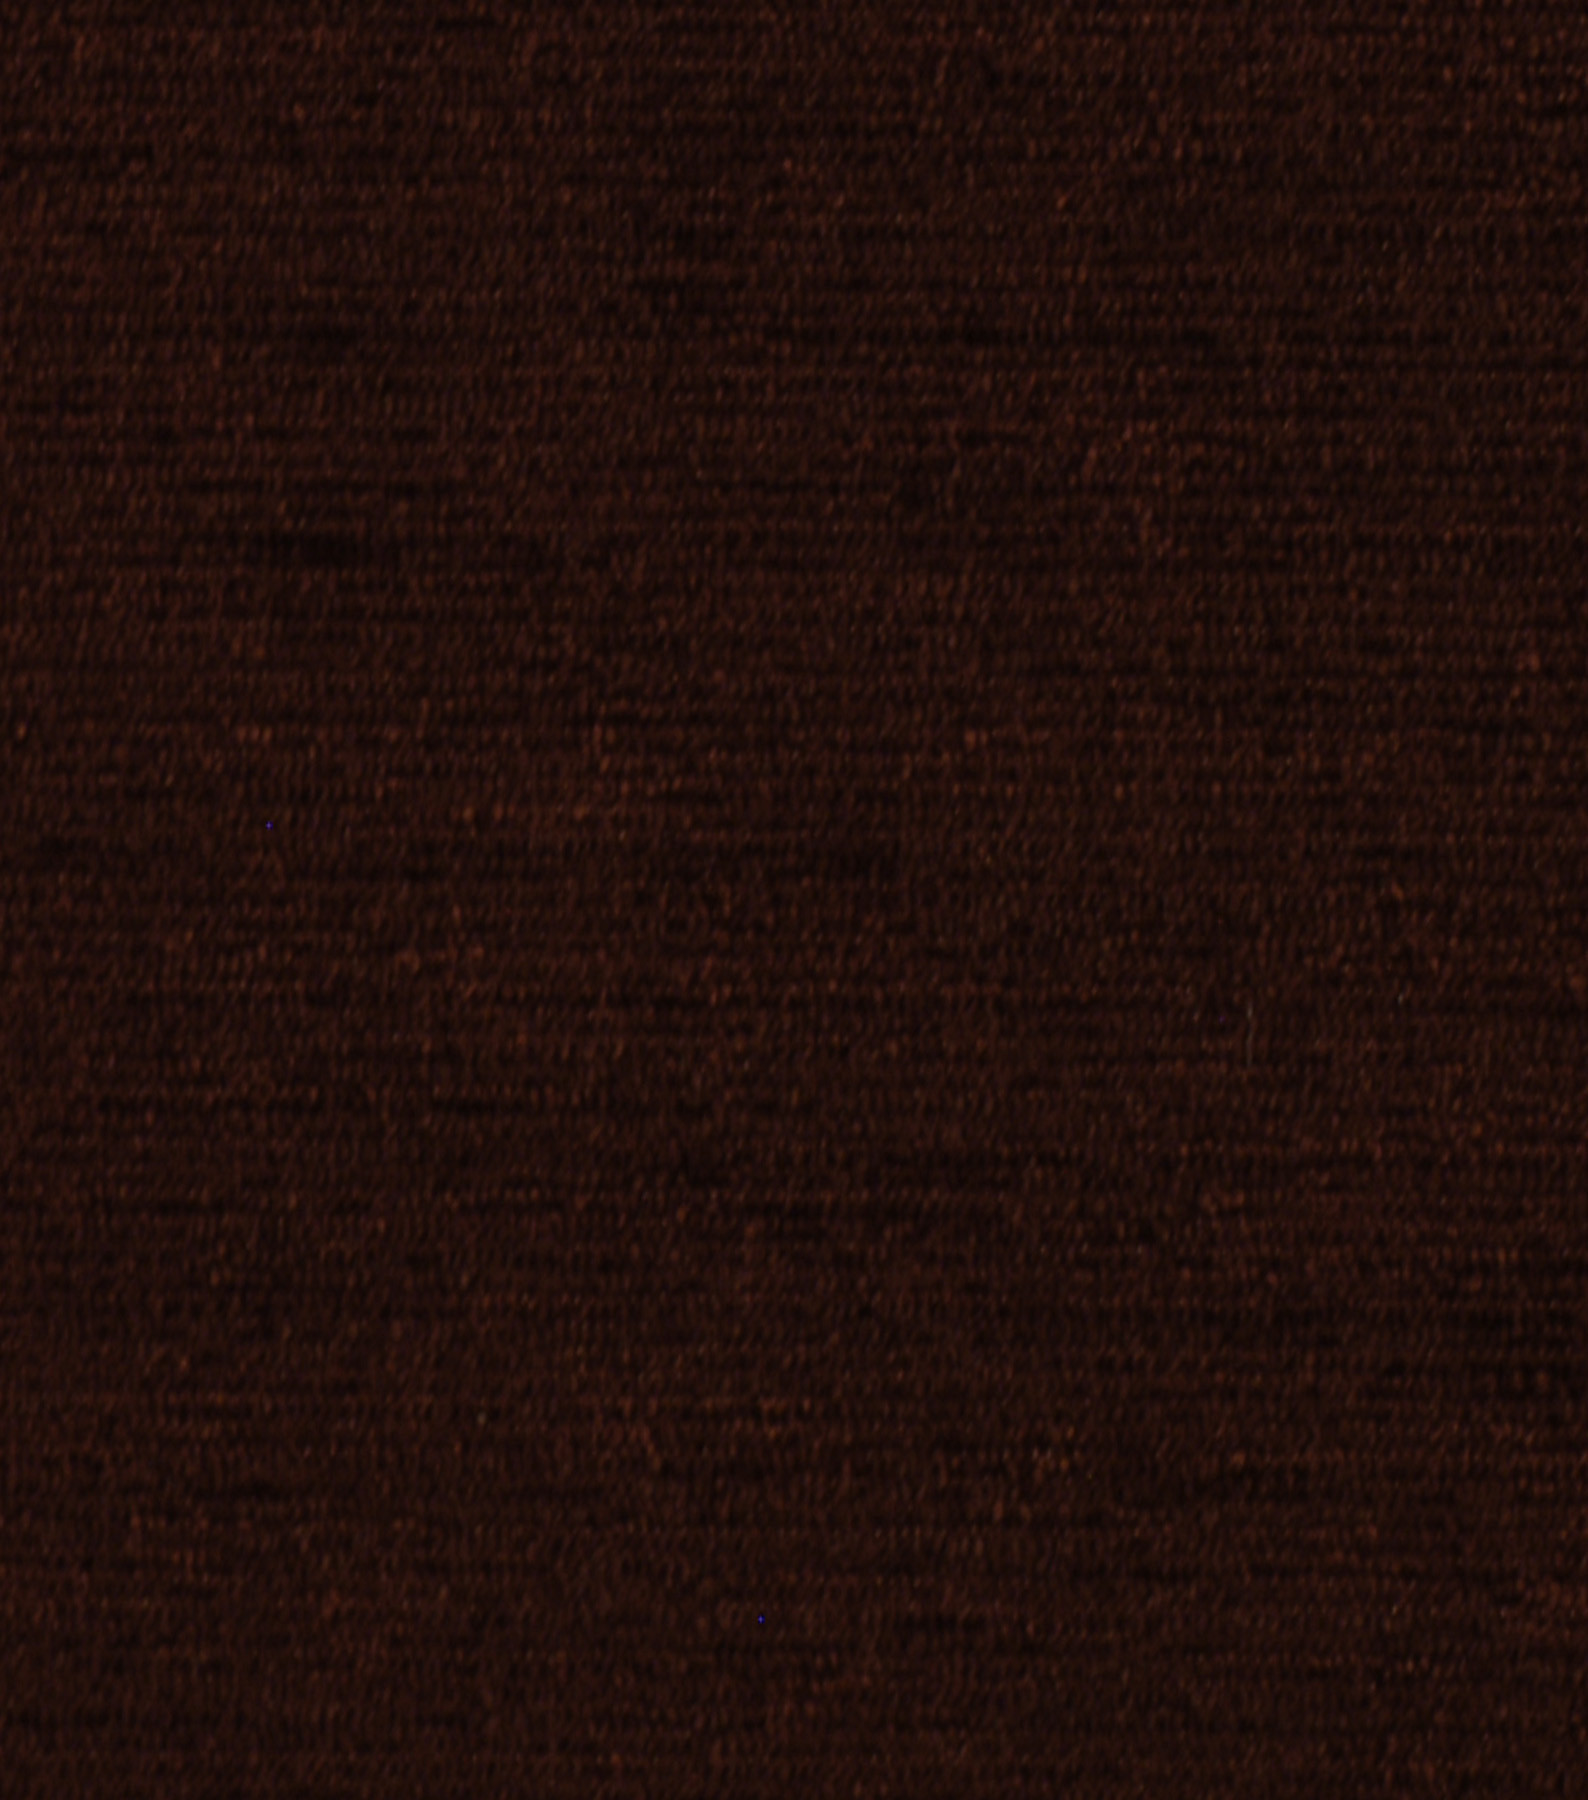 Home Decor 8\u0022x8\u0022 Fabric Swatch-Signature Series Just Perfect Merlot